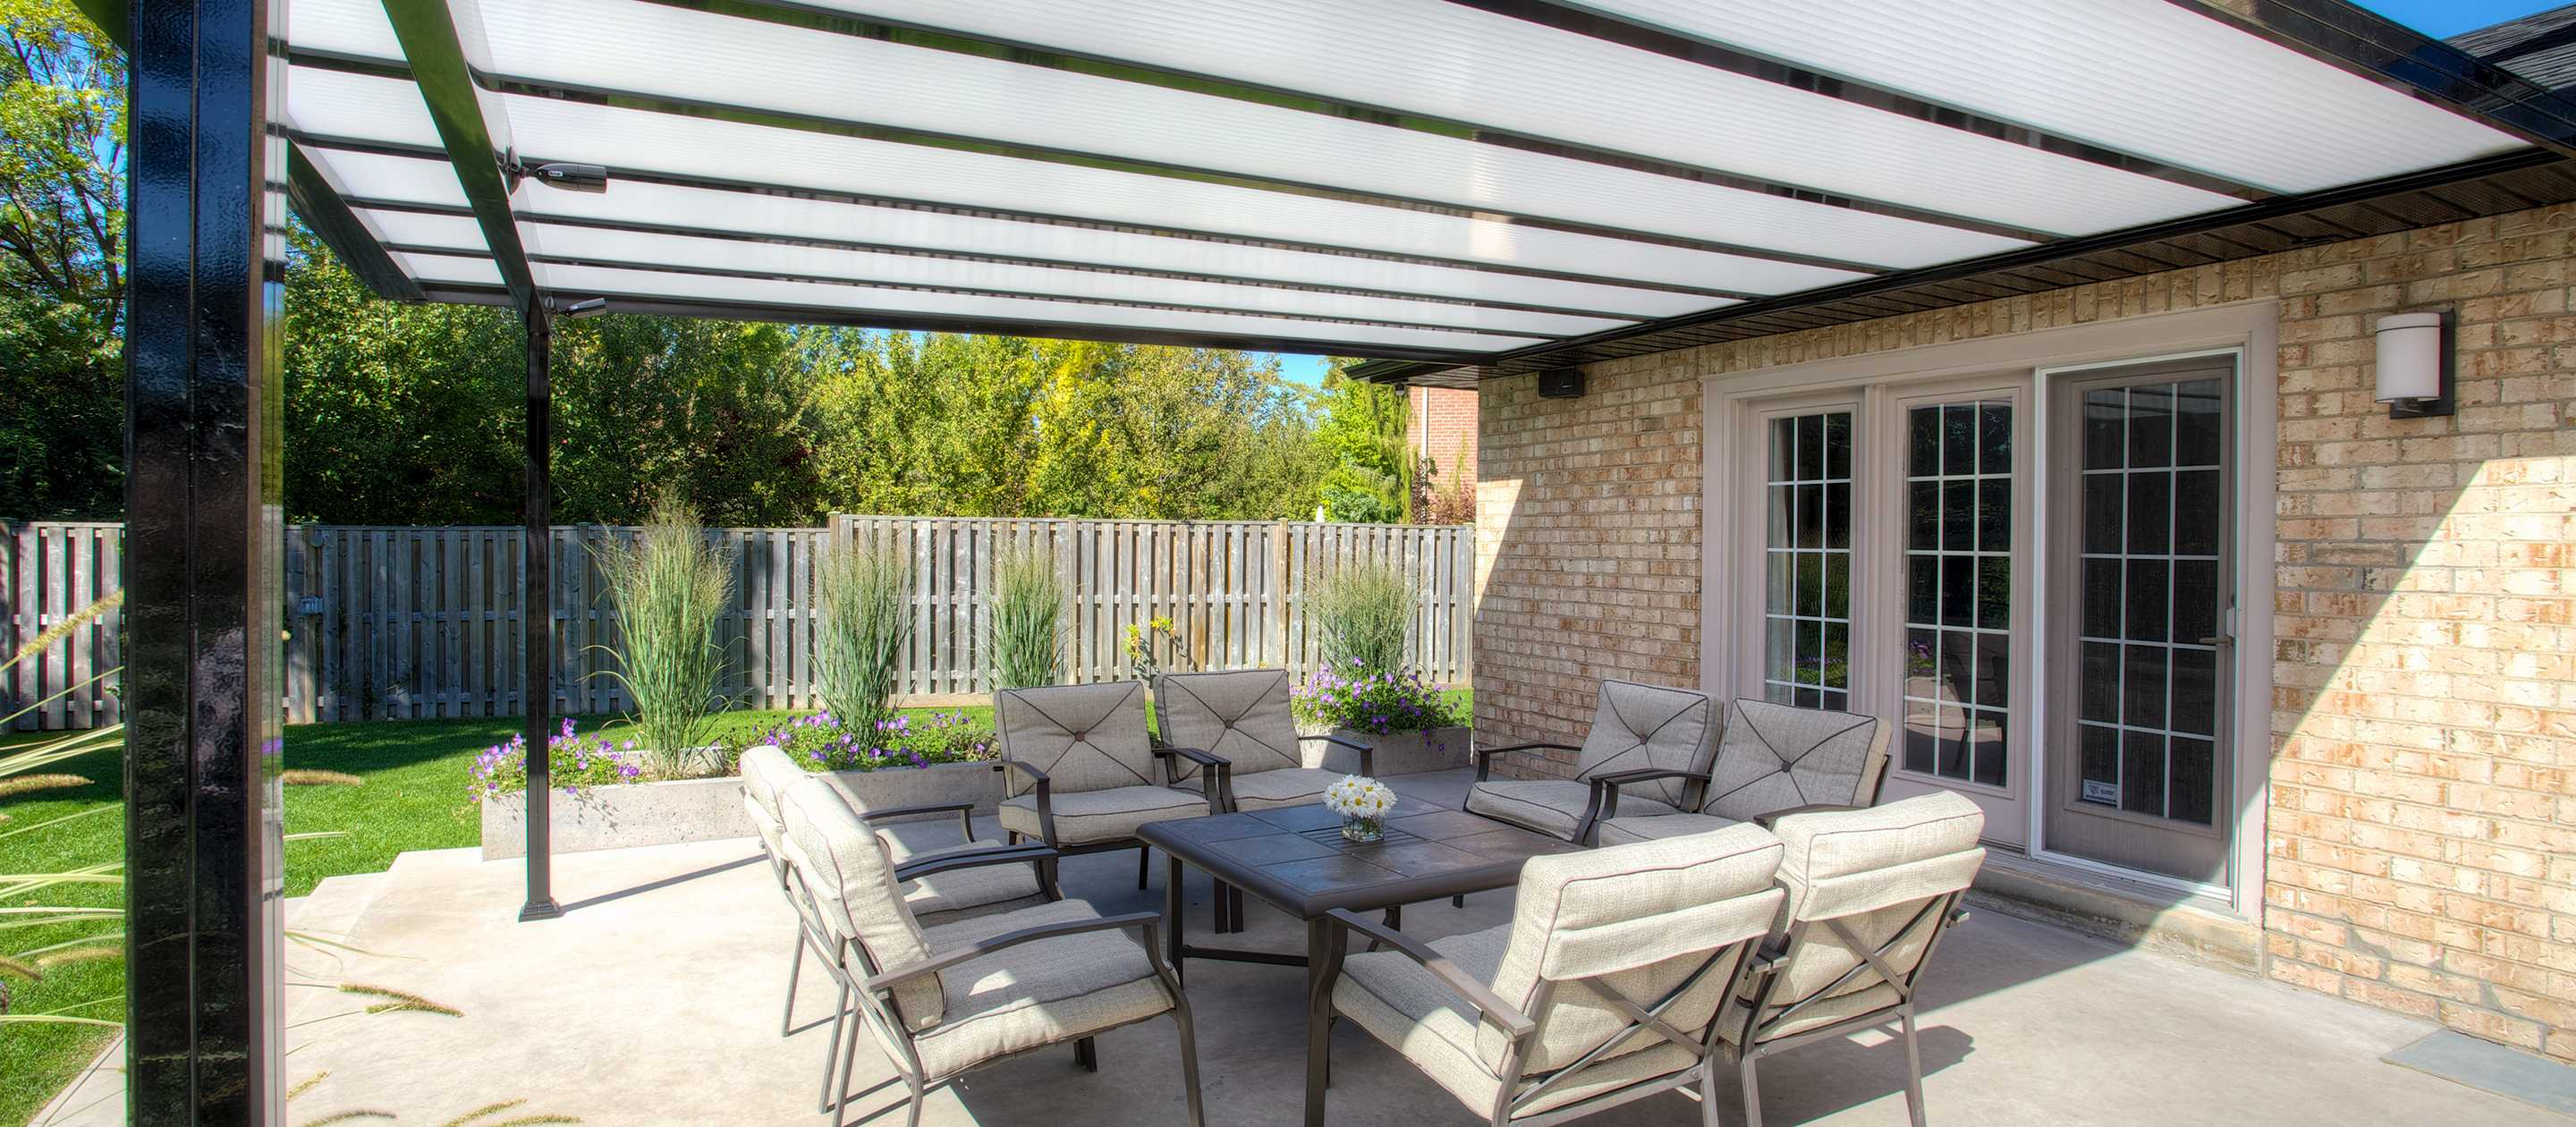 Cover Patio Pergola Benefits Of Having A Covered Patio In Vancouver Toronto And